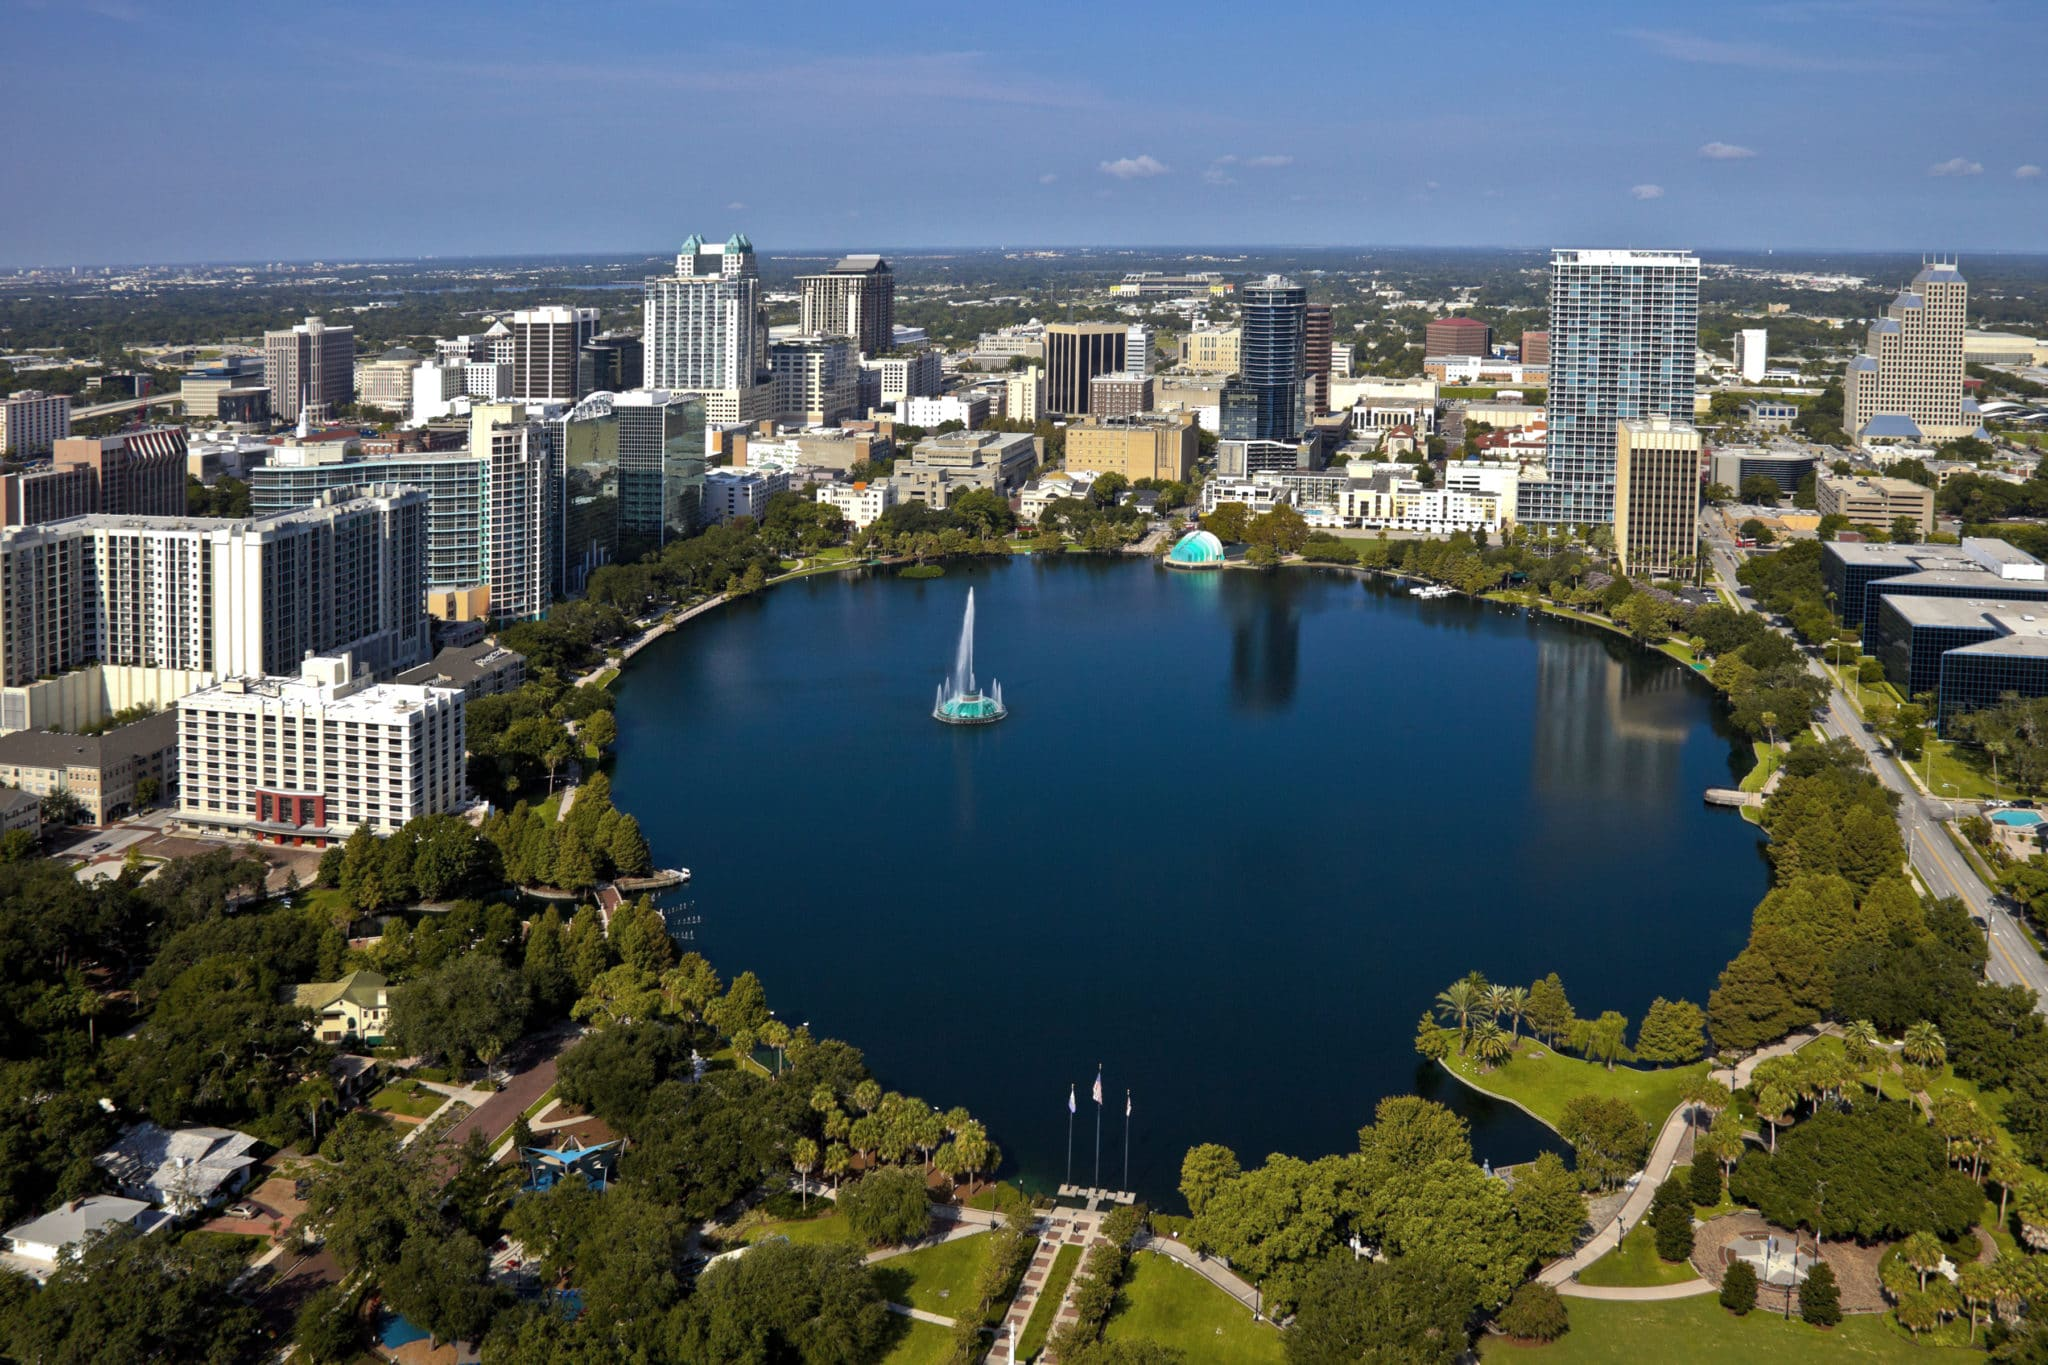 Aerial view of Lake Eola with surrounded by green space and city buildings in the background.